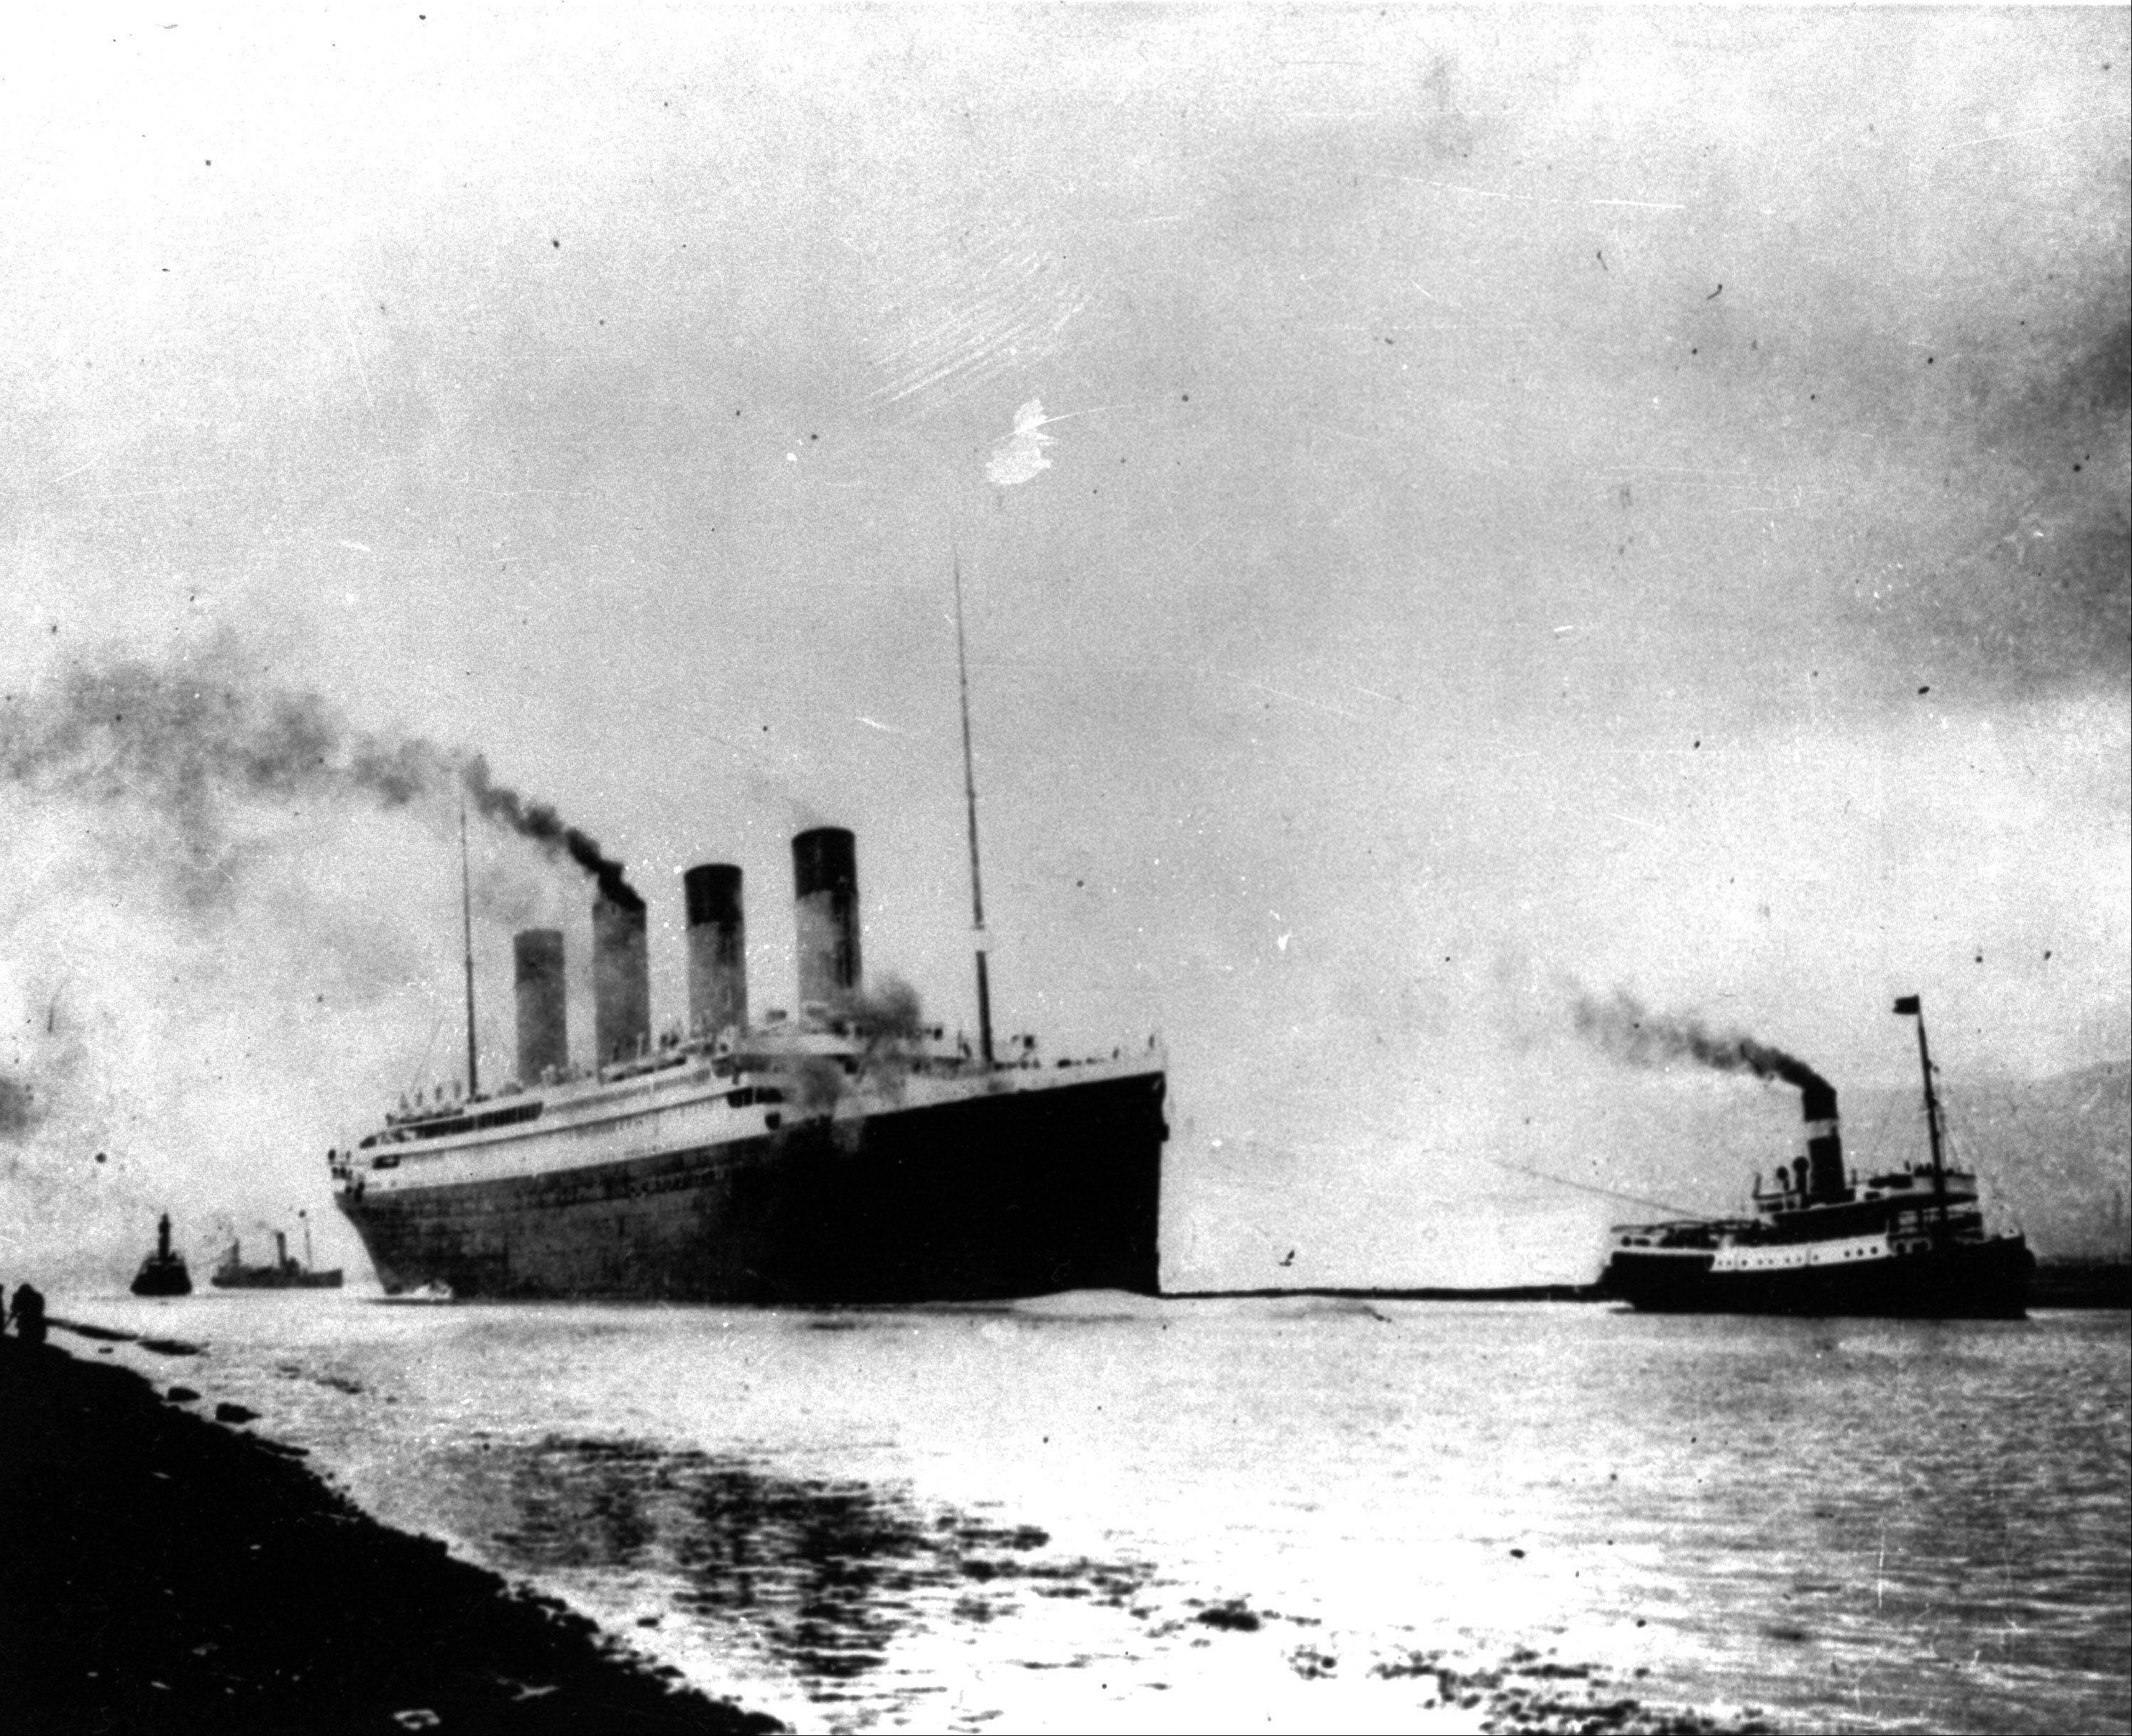 In this April 10, 1912, file photo, the luxury liner Titanic departs Southampton, England, on her maiden Atlantic voyage en route to New York City. Five days into her journey, the ship struck an iceberg and sank, resulting in the deaths of more than 1,500 people.